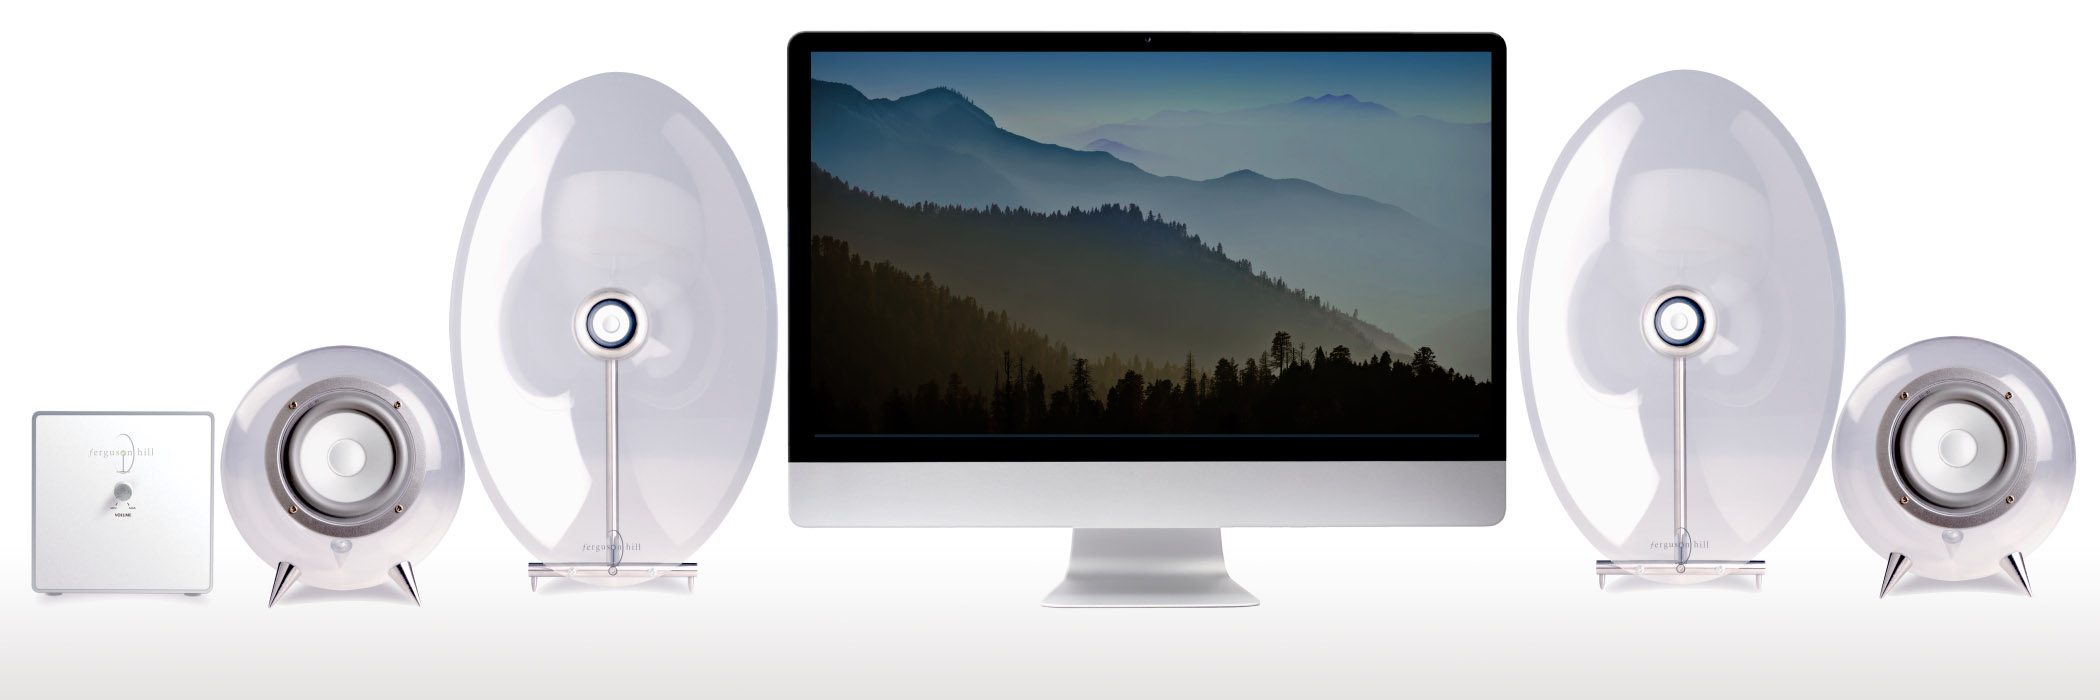 iMac and FHOO7 Mini Speaker System - Now with Bluetooth receiver.